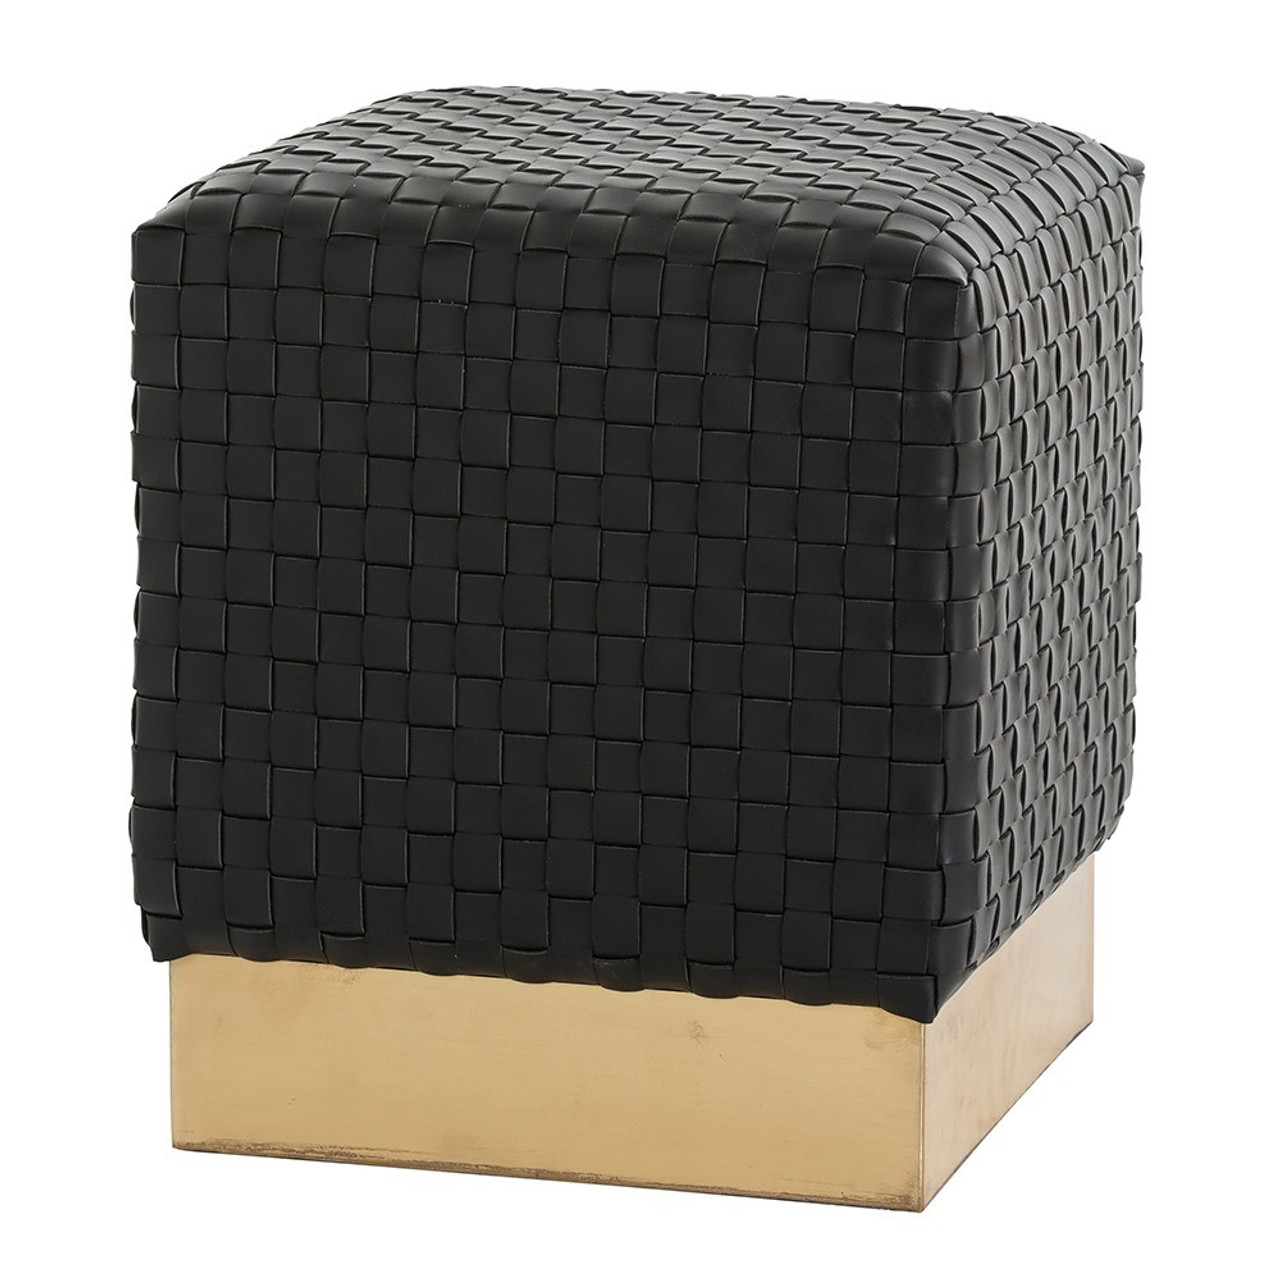 Swell Emmit Black Woven Leather Square Ottoman Lamtechconsult Wood Chair Design Ideas Lamtechconsultcom